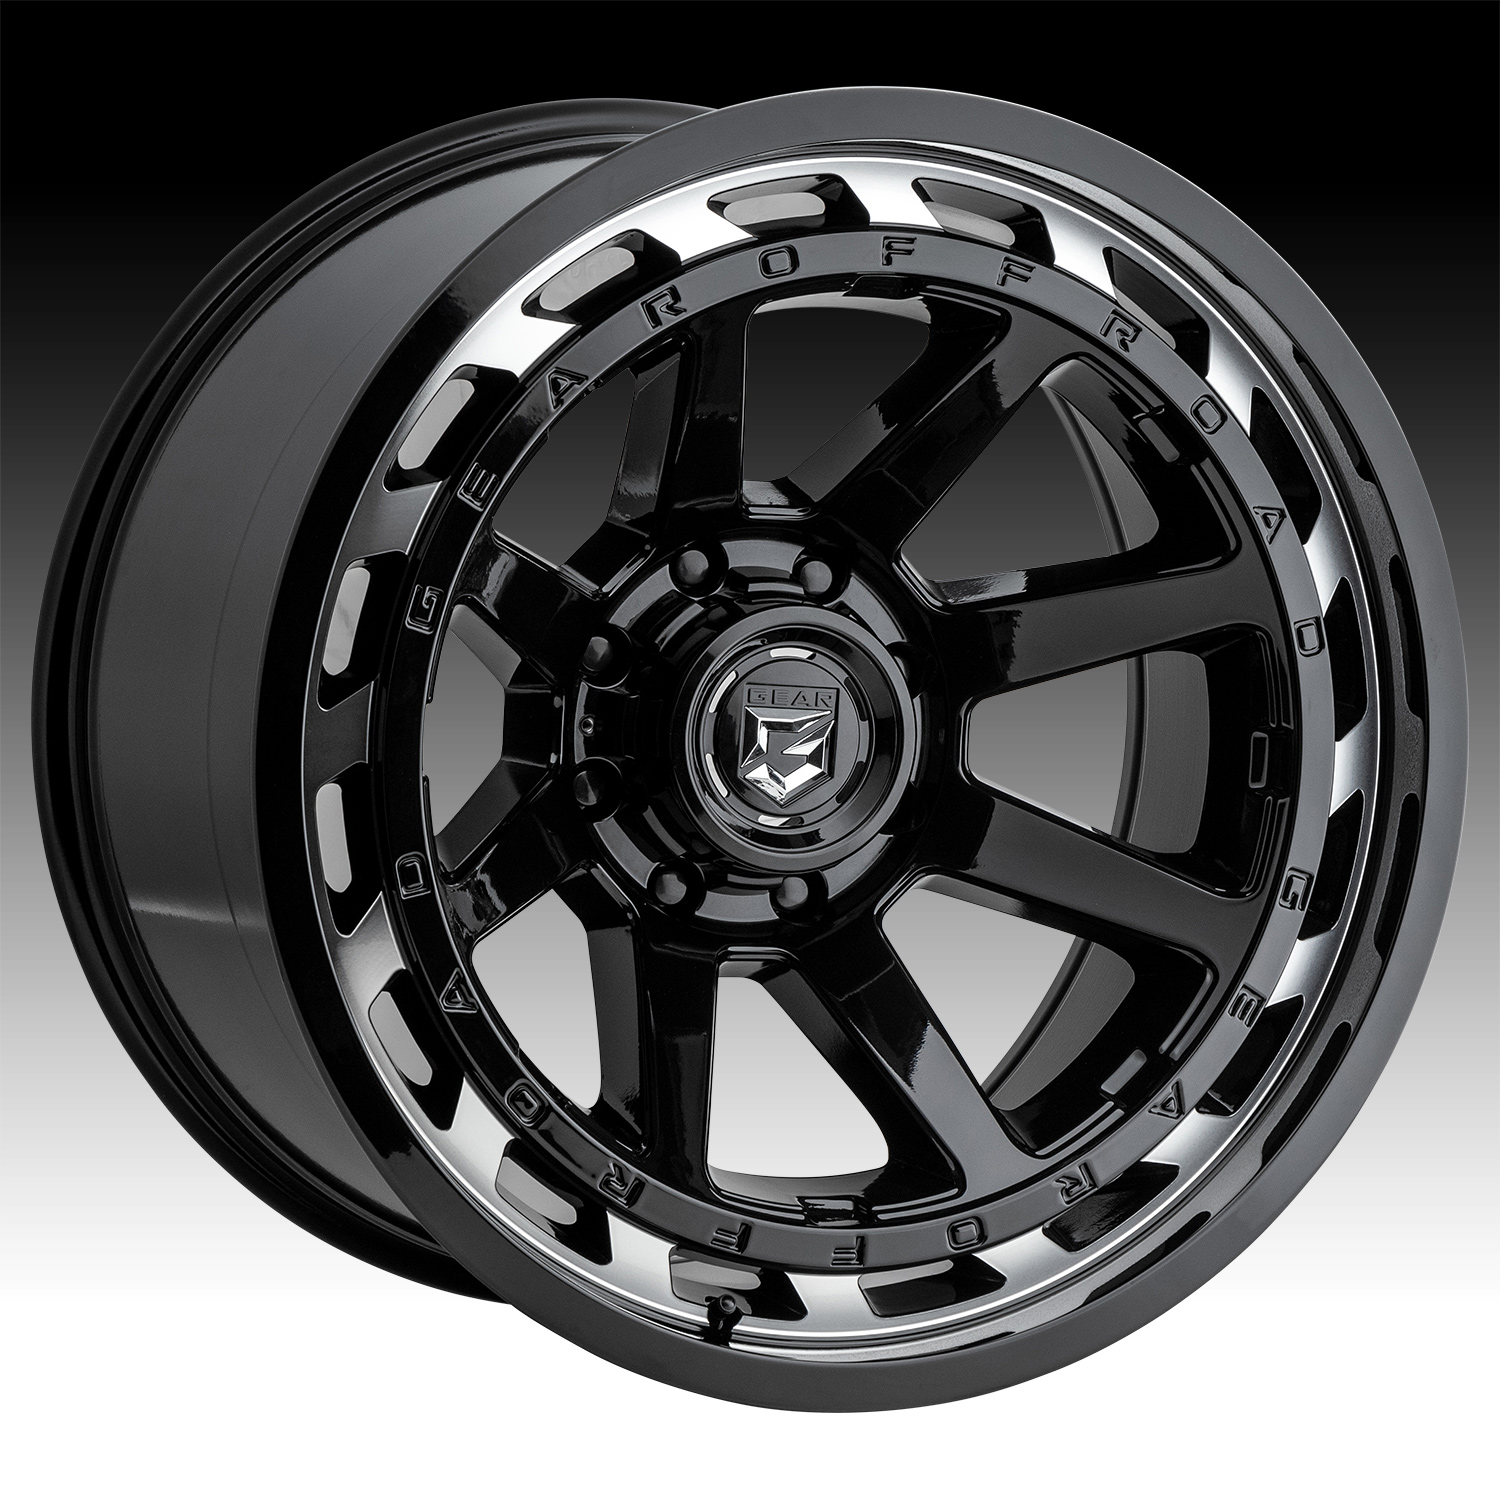 18x9//6x5.5, +18mm Offset Gear Alloy 726M Big Block Wheel with Machined Finish